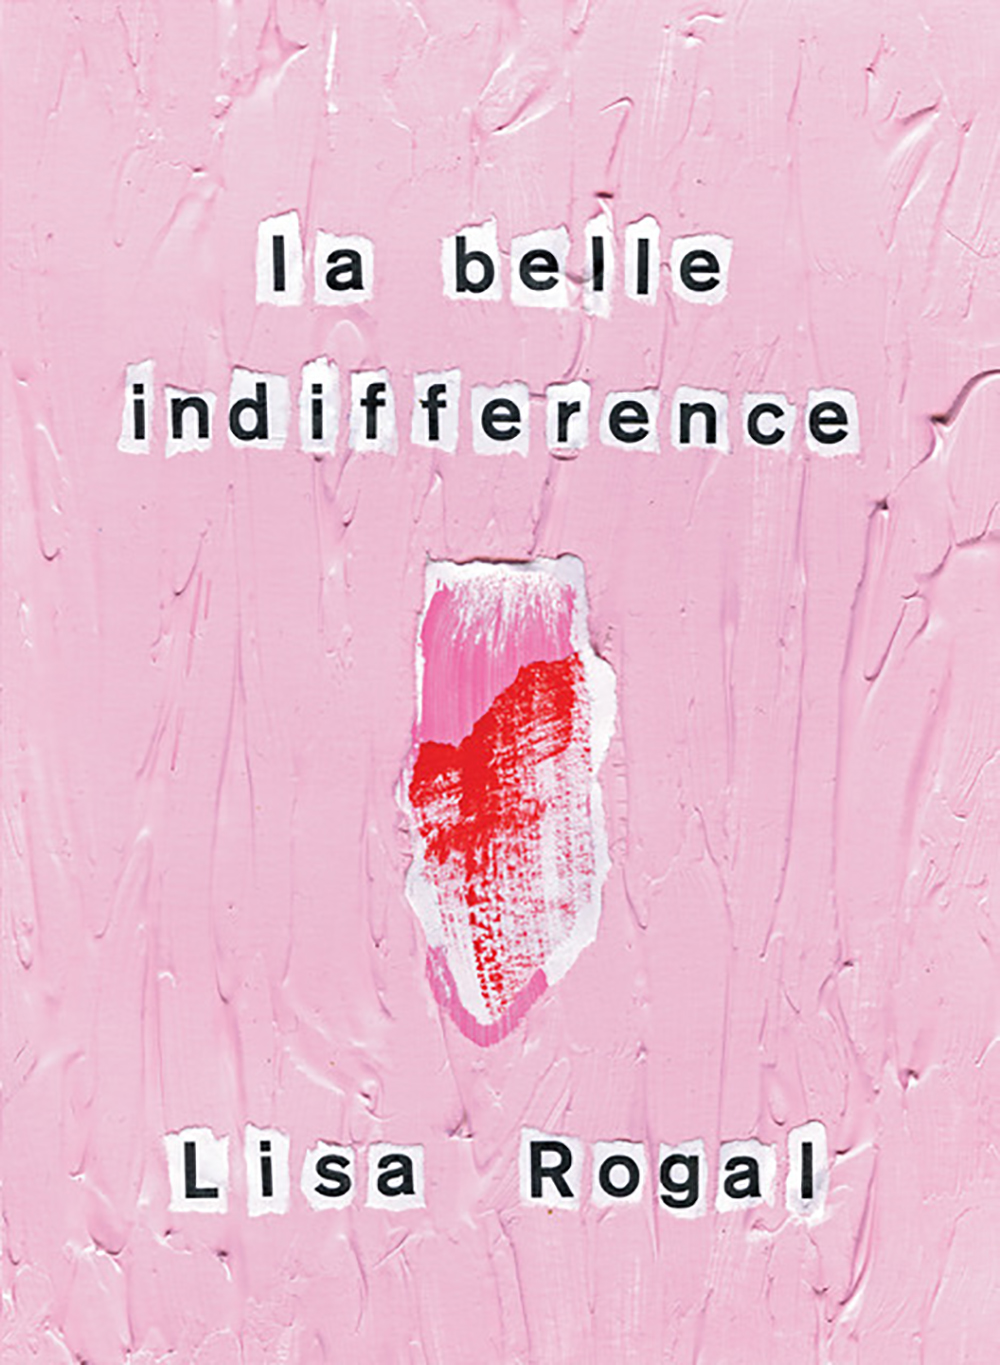 la belle indifference